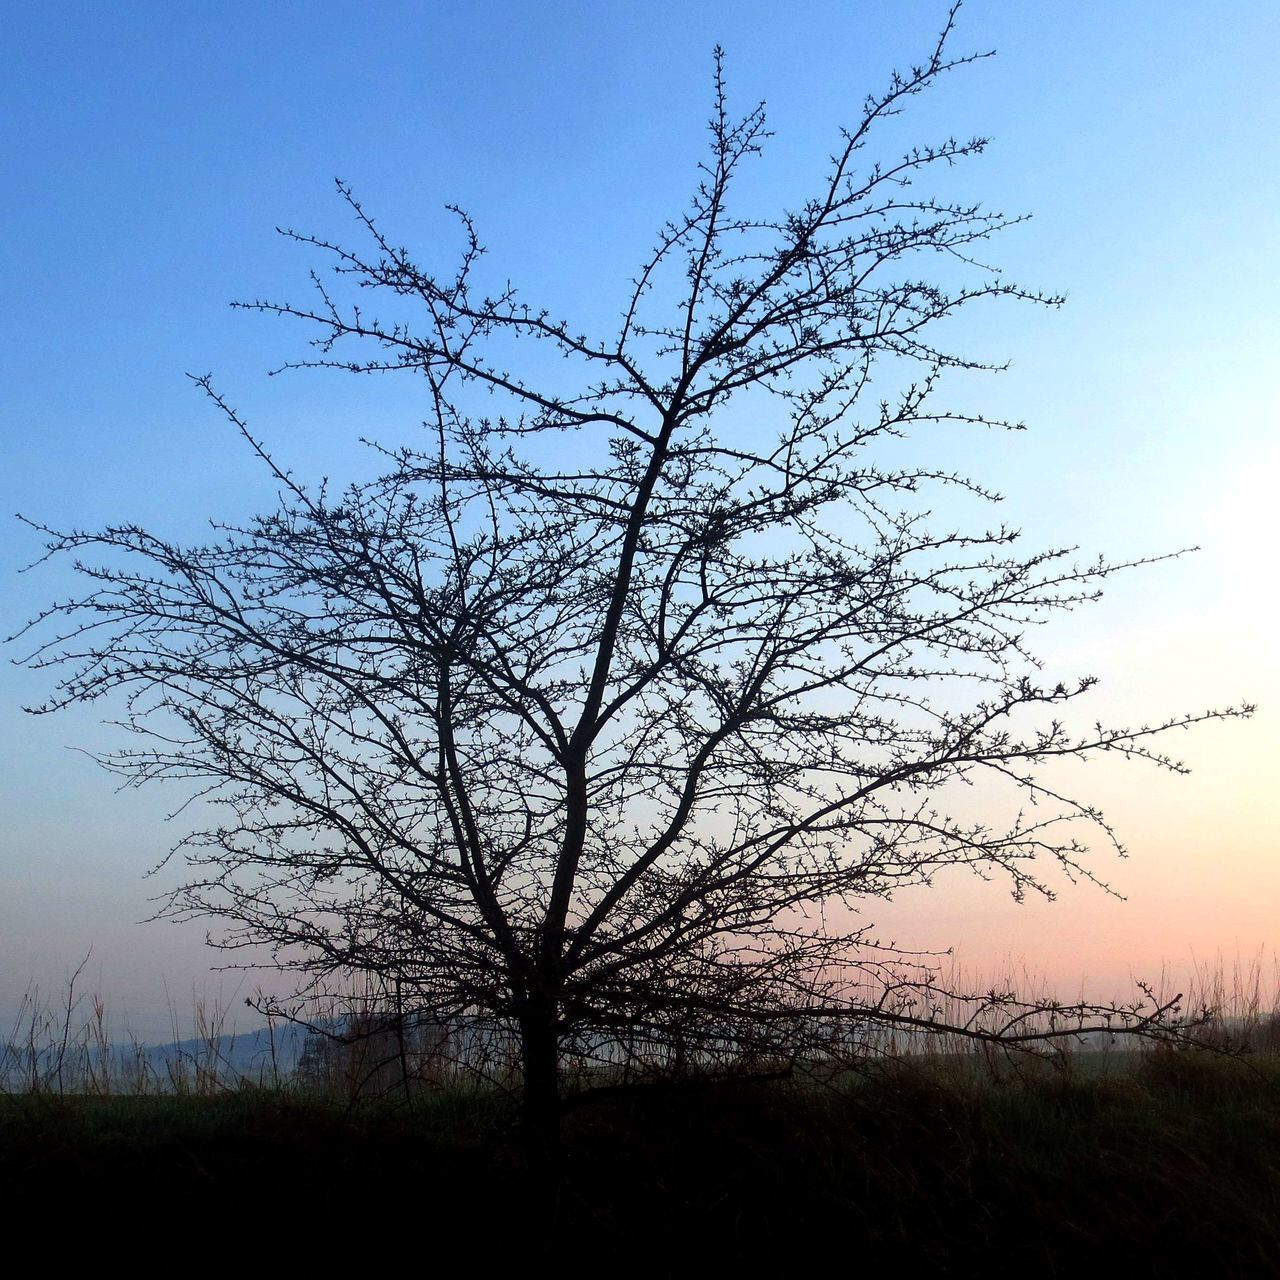 Bare Tree Beauty In Nature Branch Clear Sky Day Grass Growth Isolated Landscape Lone Low Angle View Nature No People Outdoors Scenics Sky Tranquil Scene Tranquility Tree